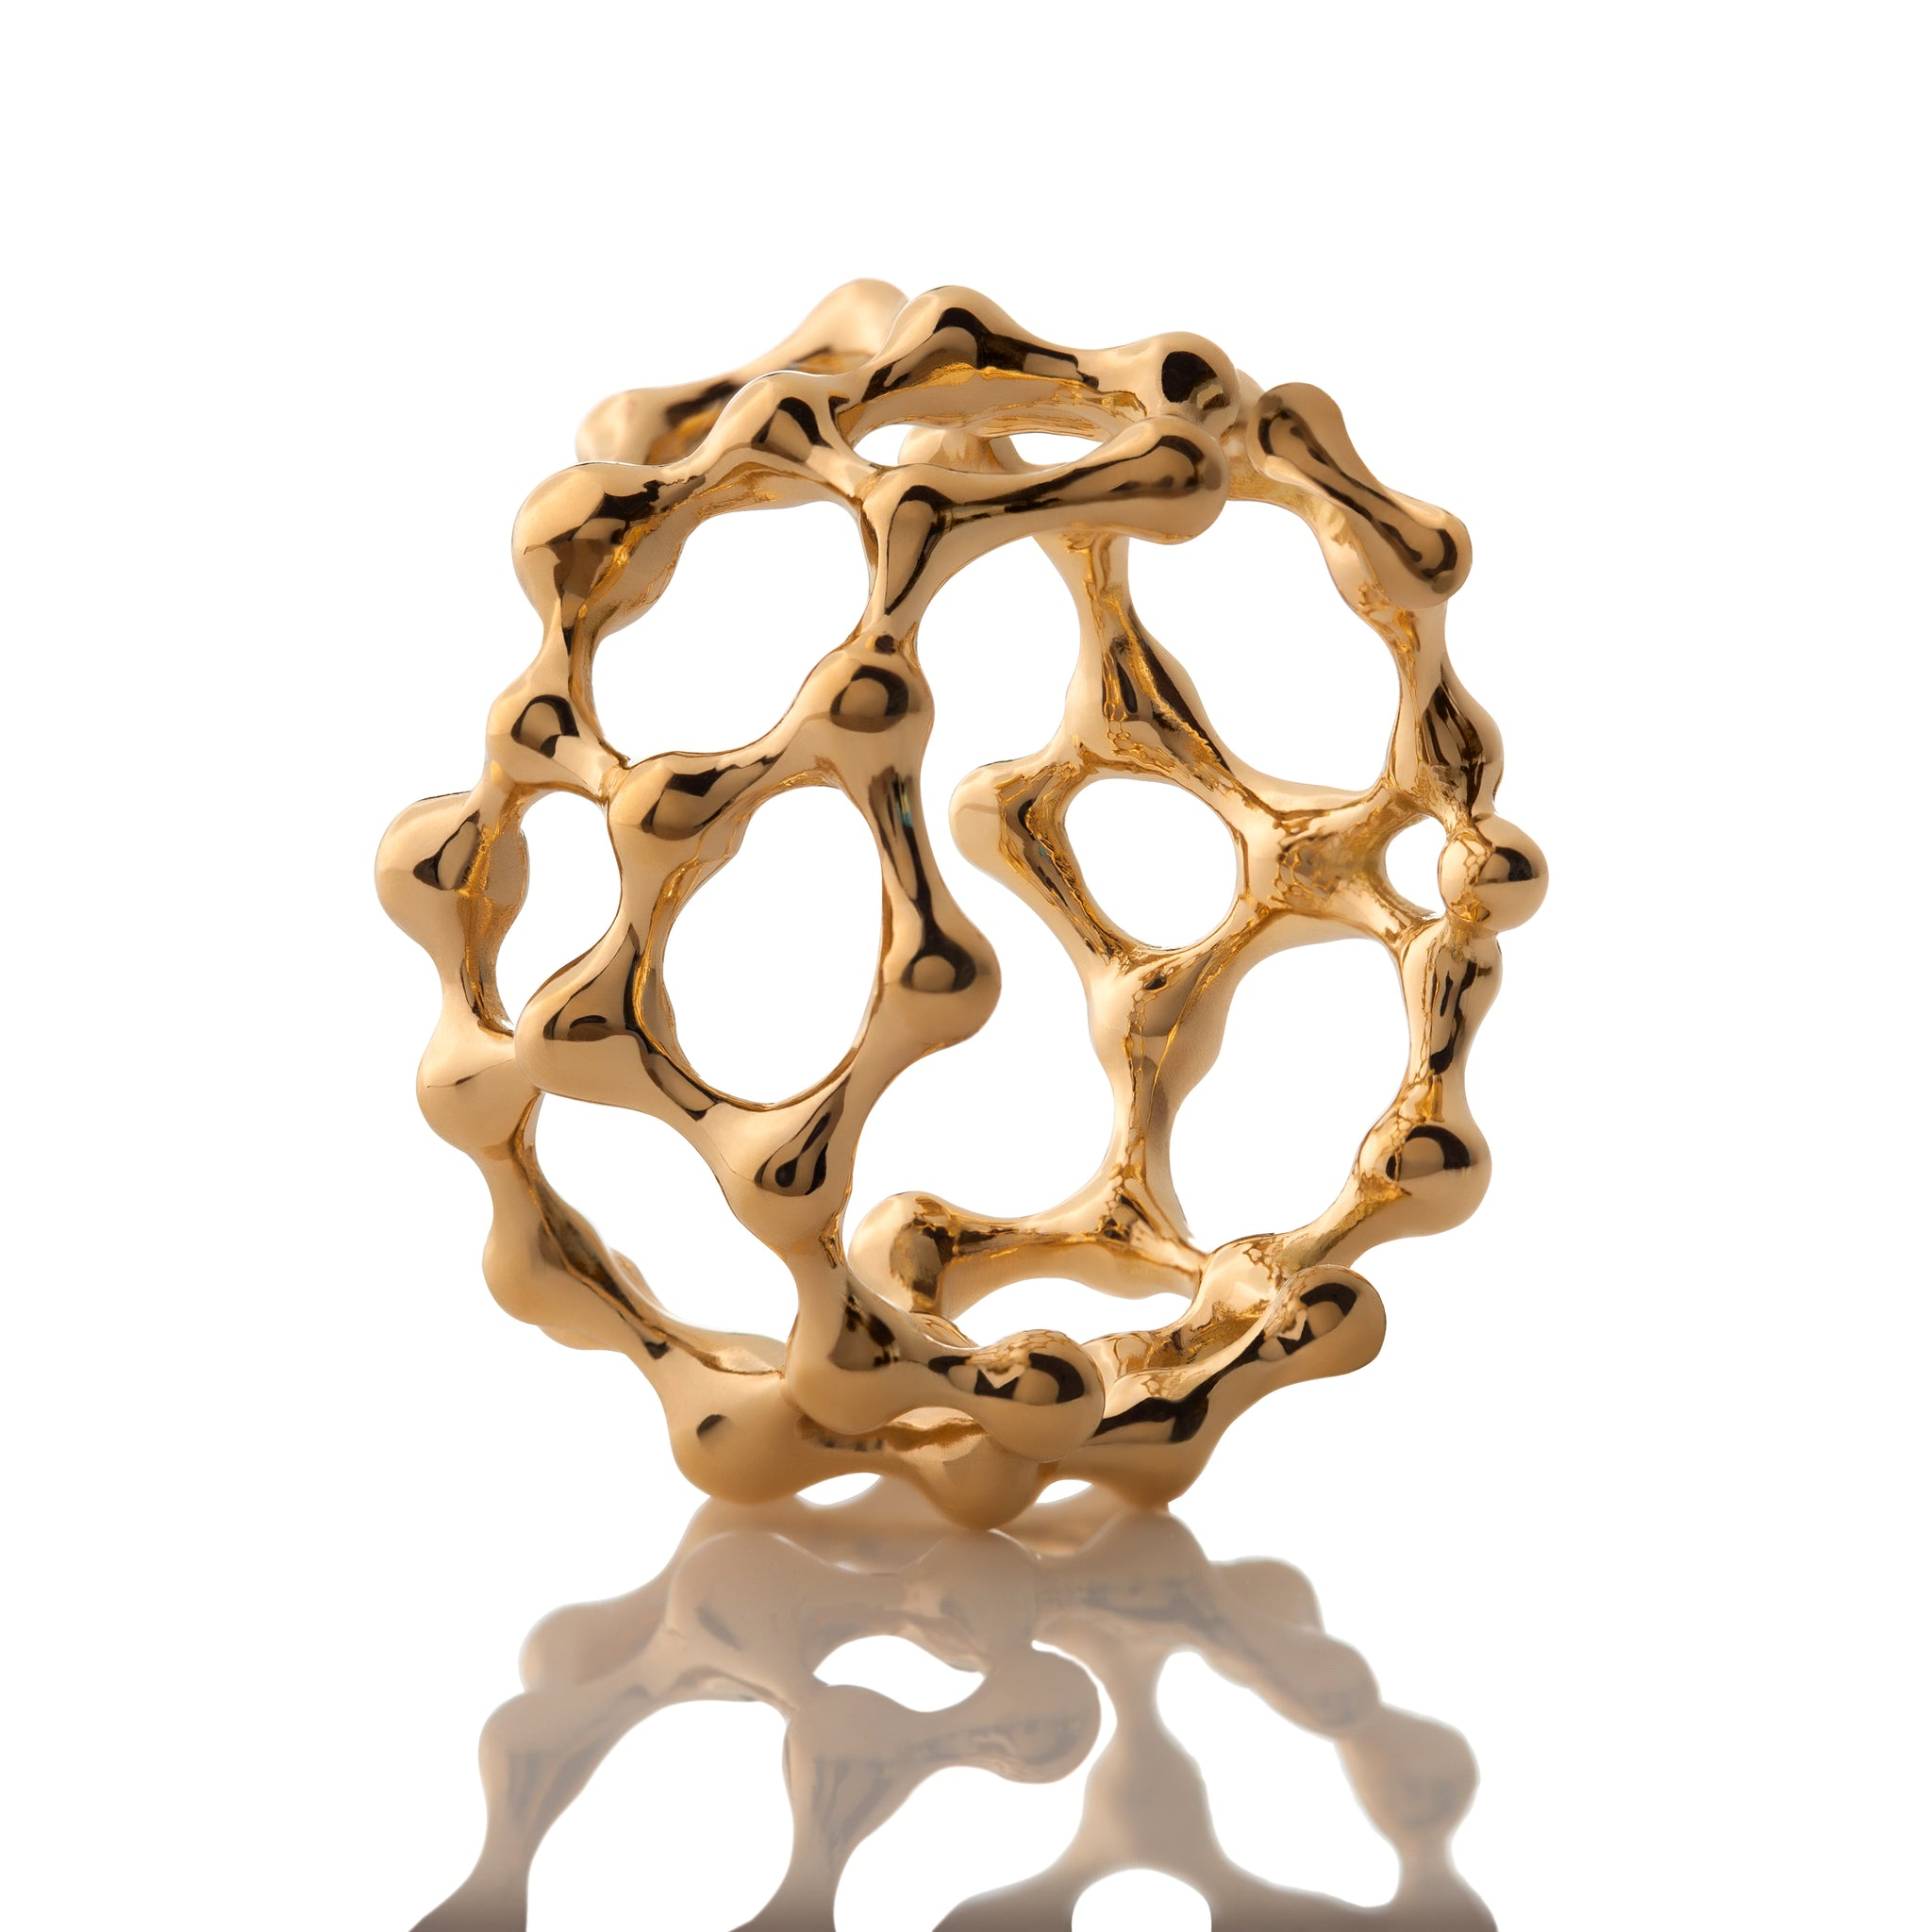 DNA 18K GOLD PLATED SILVER Atomic Ring